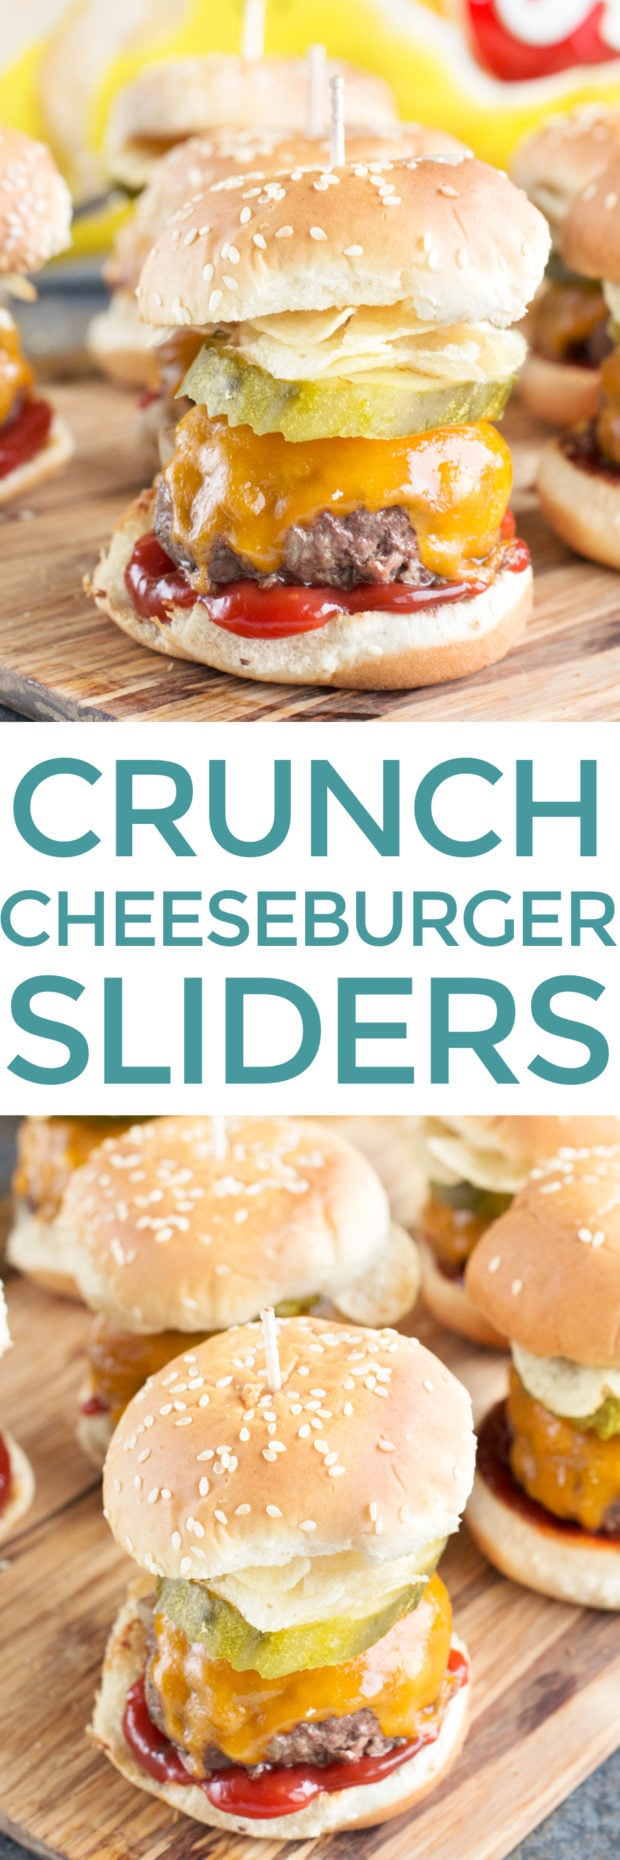 Crunch Cheeseburger Sliders